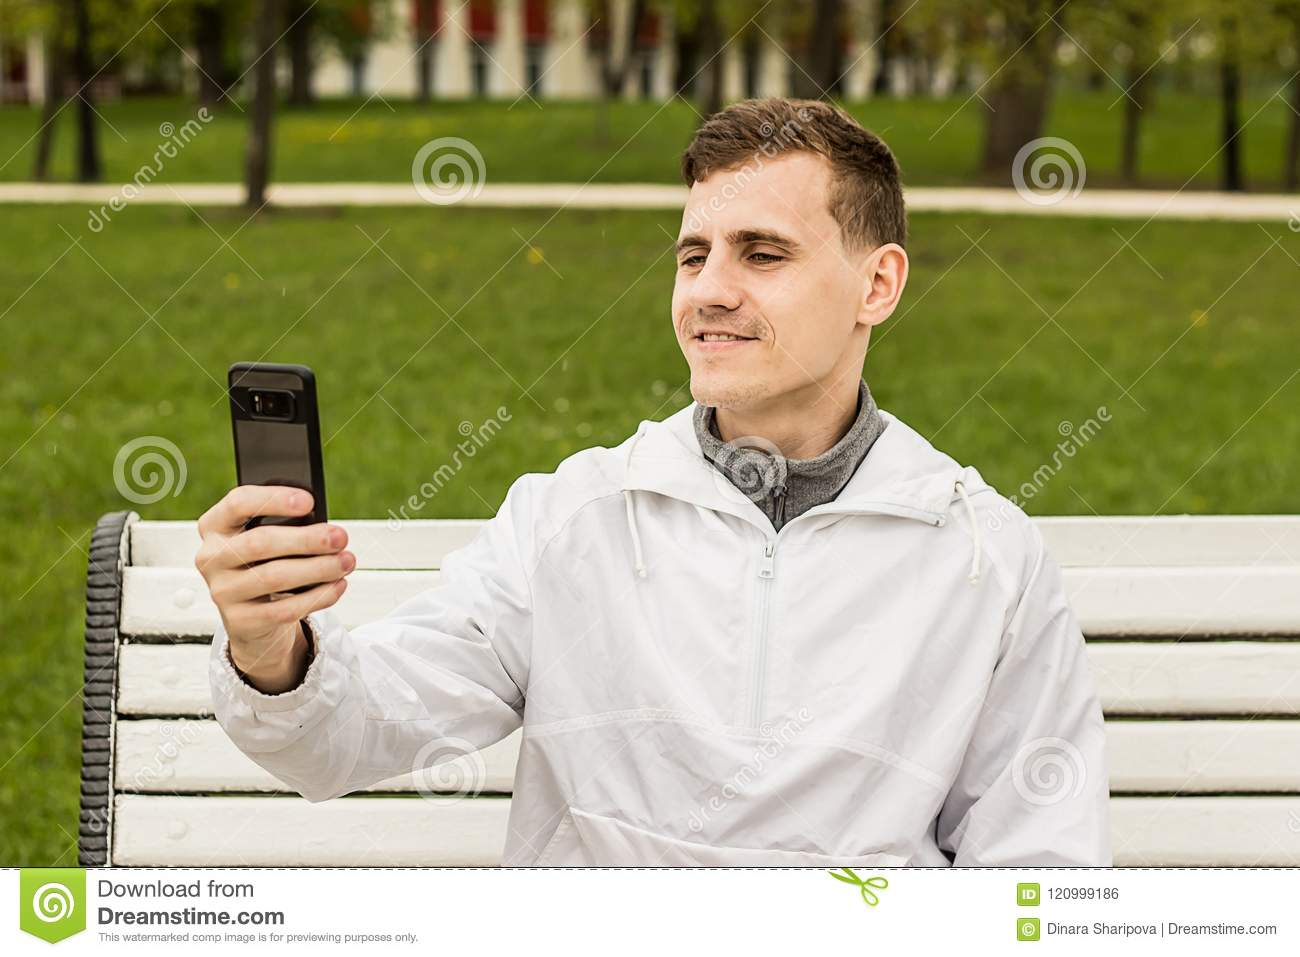 Cute Guy Doing Selfie On Phone Picture Of Himself Stock Photo Image Of Mobile Friends 120999186